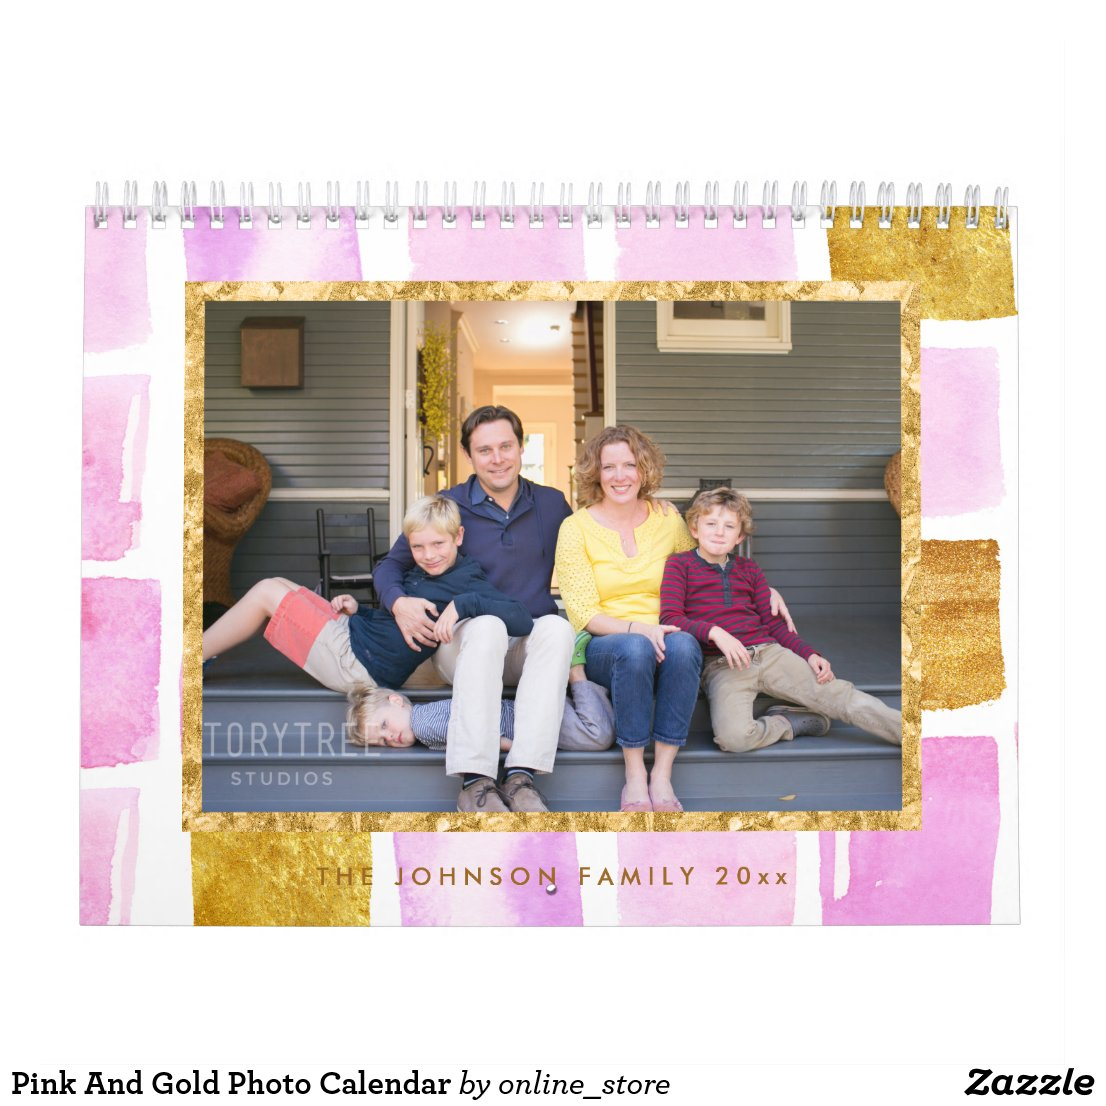 Pink And Gold Photo Calendar